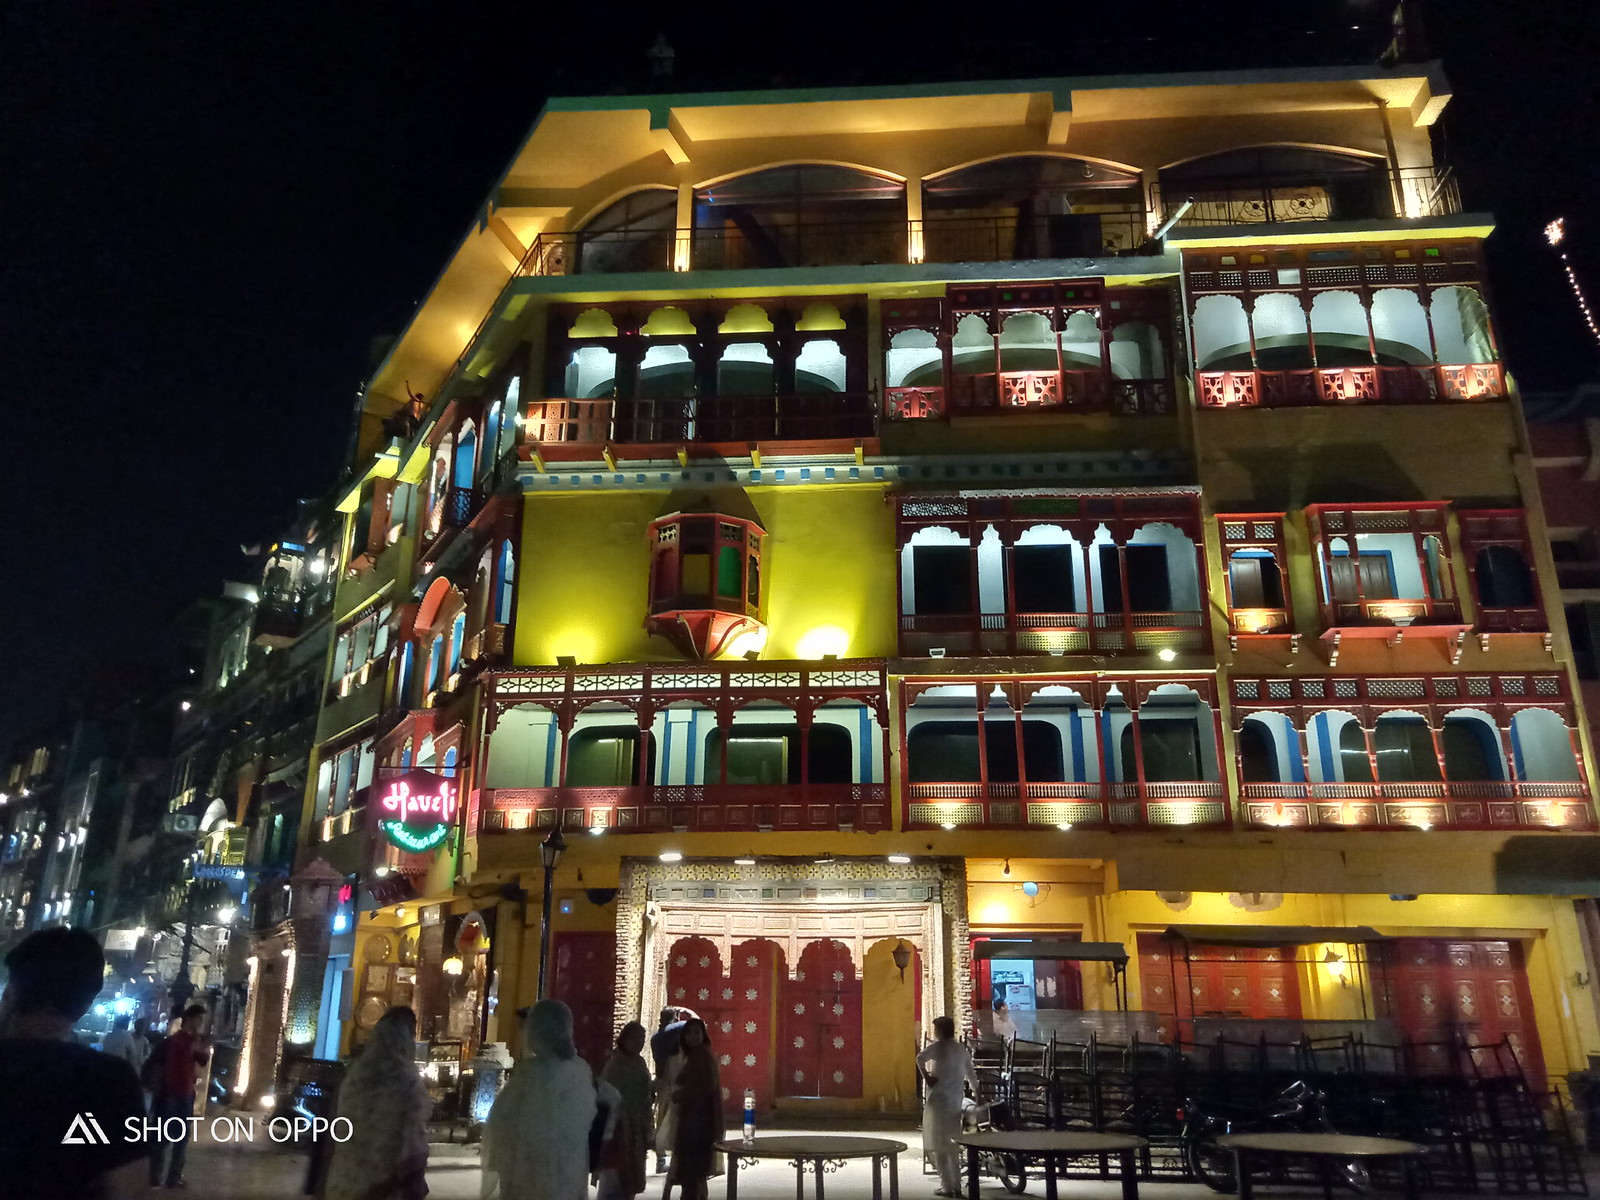 haveli food street lahore mobile photography